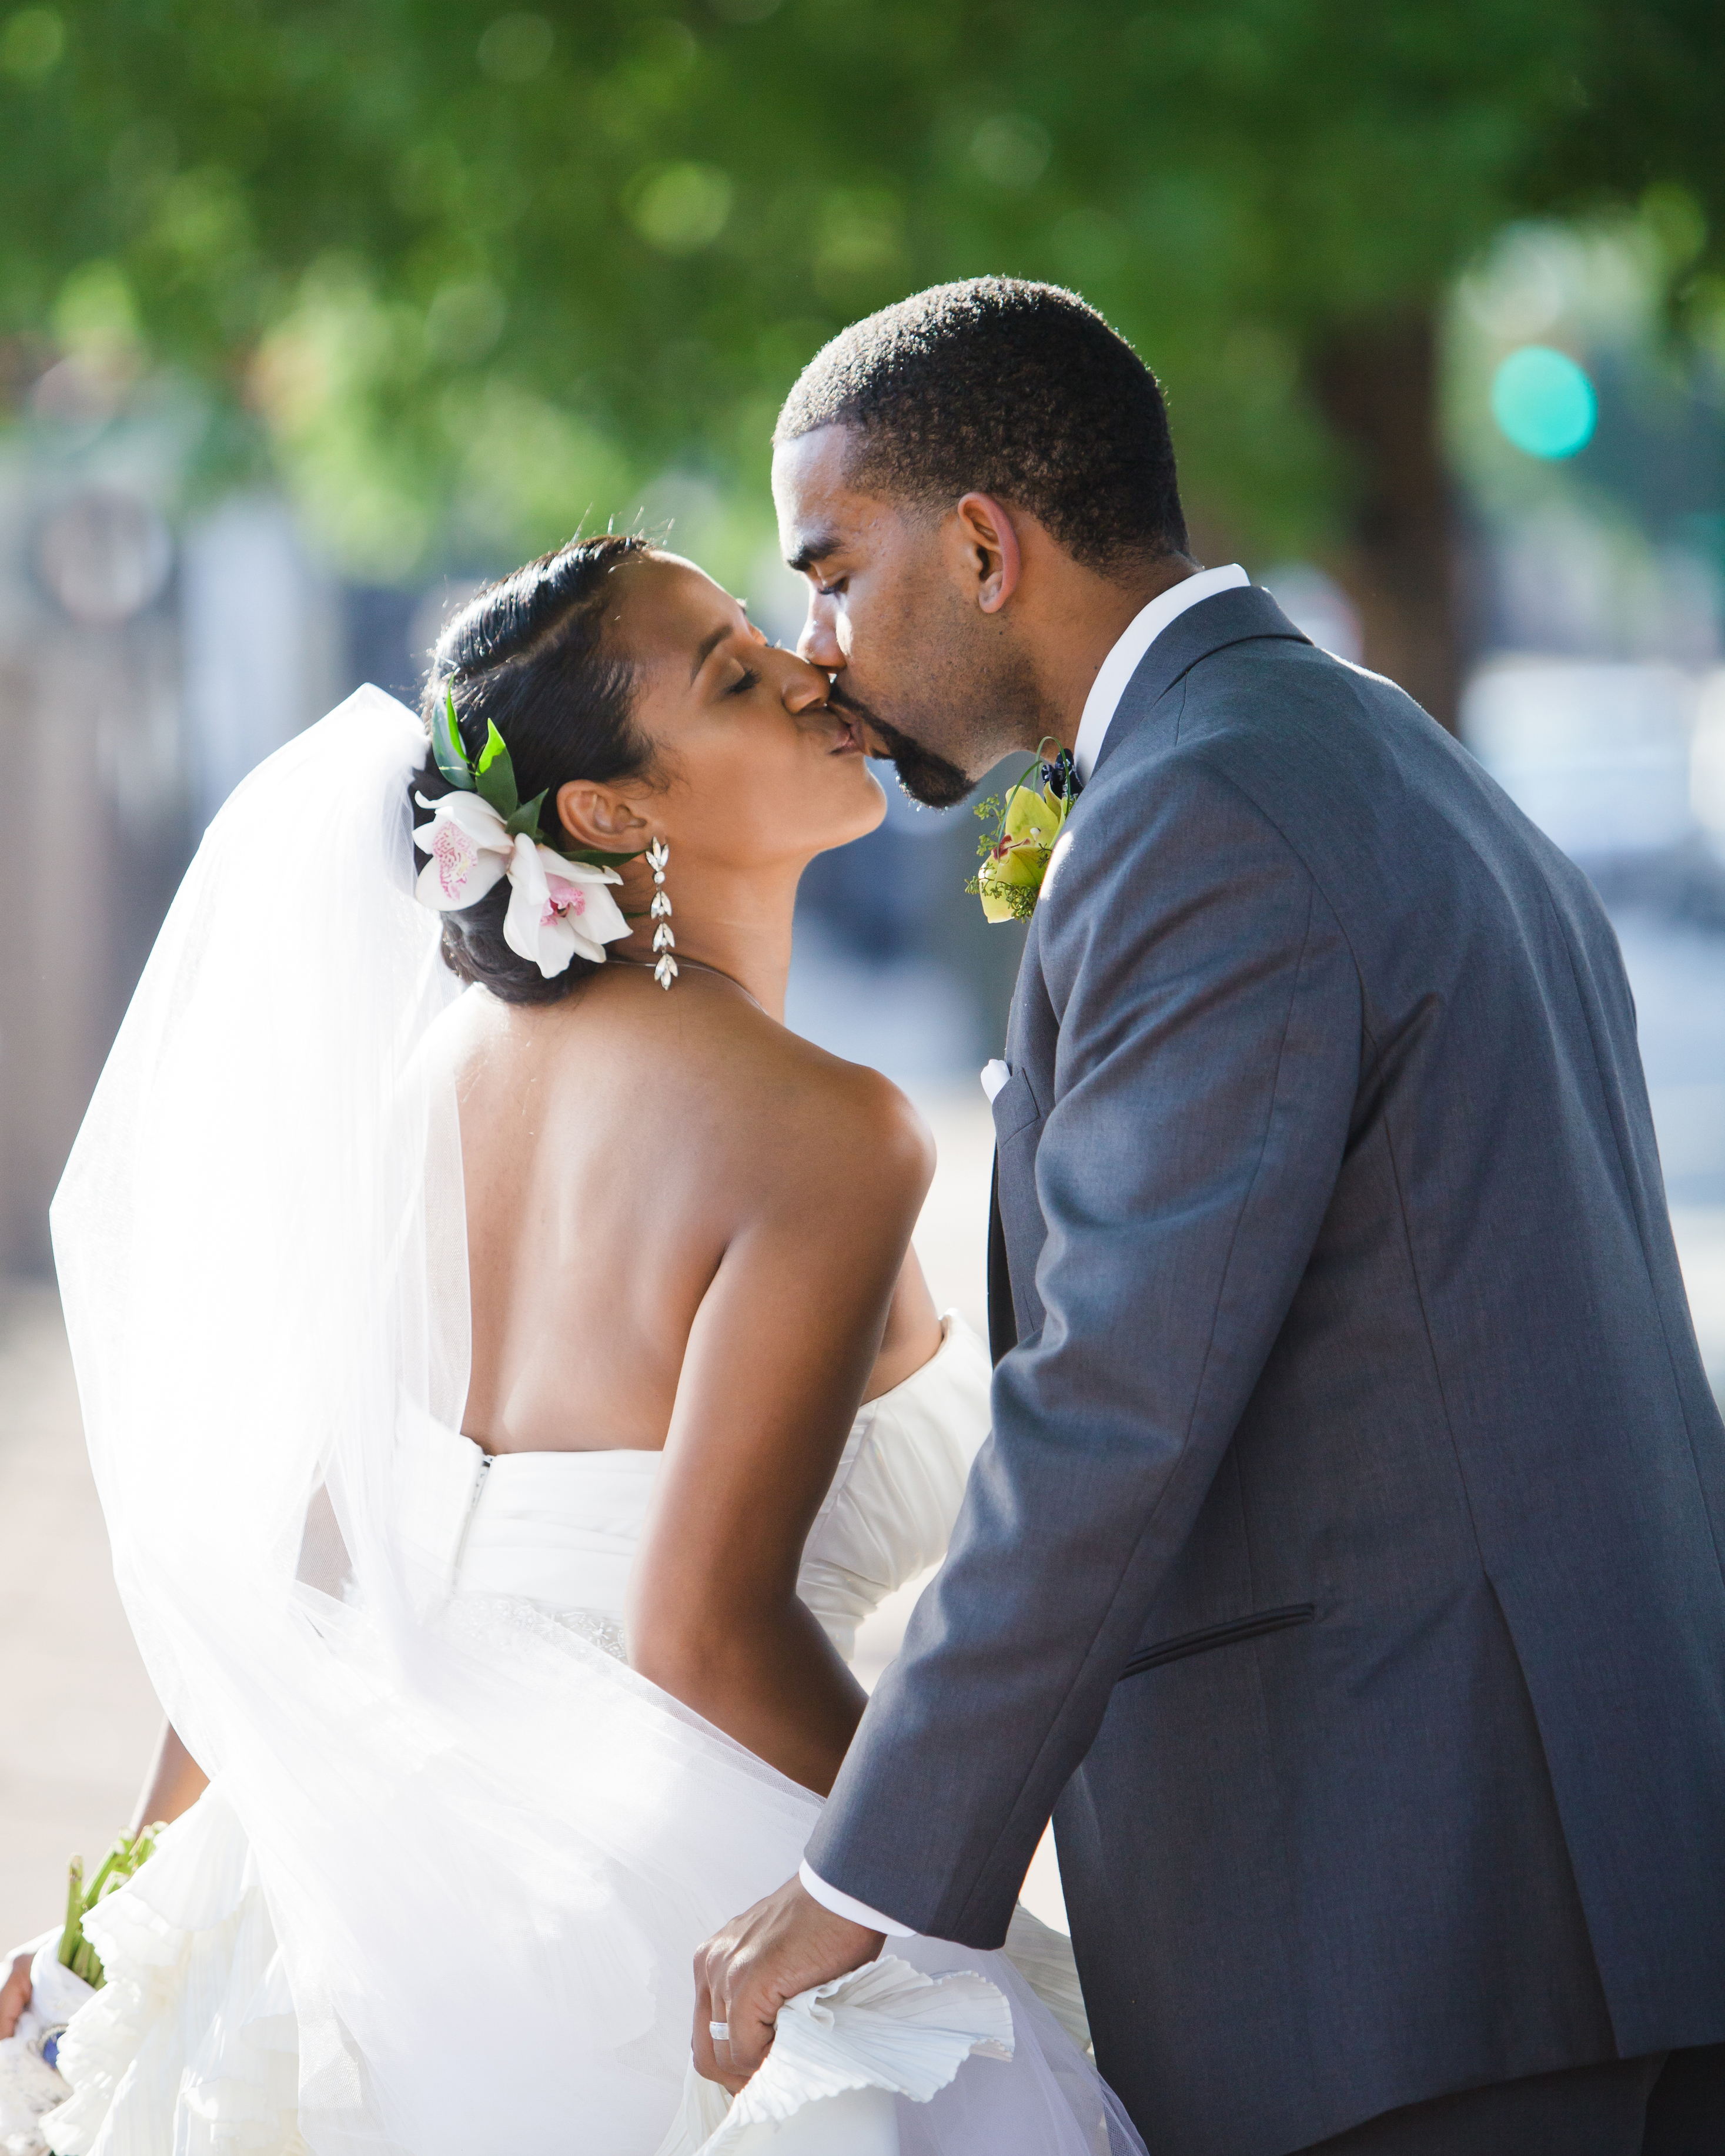 A Harlem Renaissance-Inspired Wedding in Richmond, Virginia